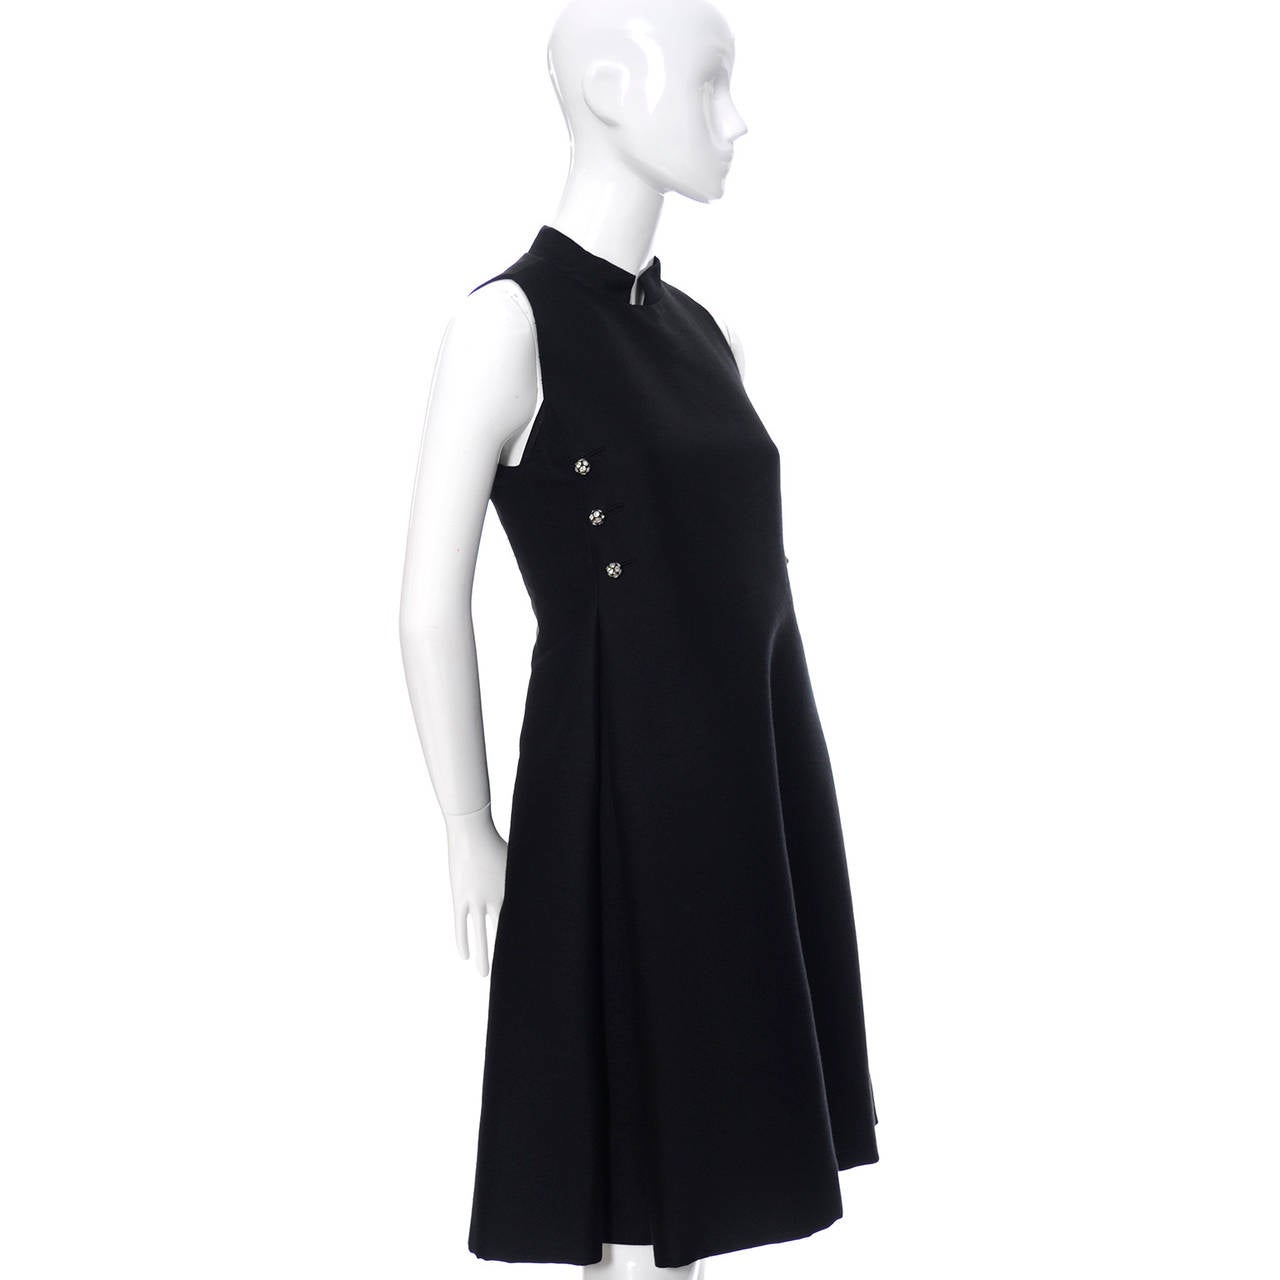 Women's Geoffrey Beene 1960s Vintage Midi Dress Mod Black Cocktail Baby Doll Rhinestones For Sale